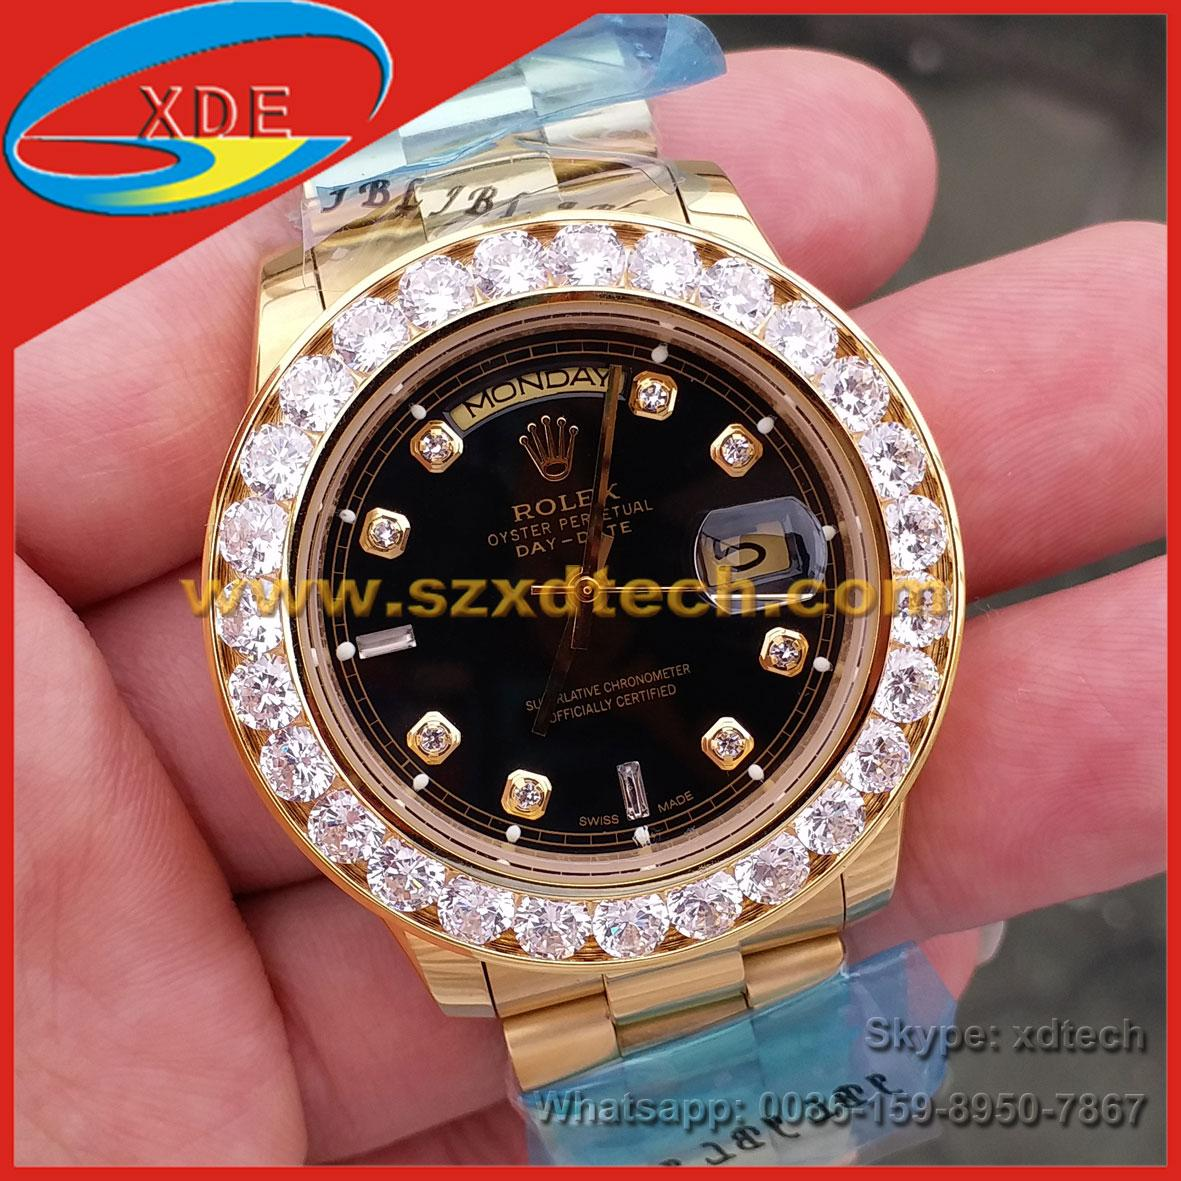 Big Diamond Rolex Watches Rolex Wrist Luxury Watches 1